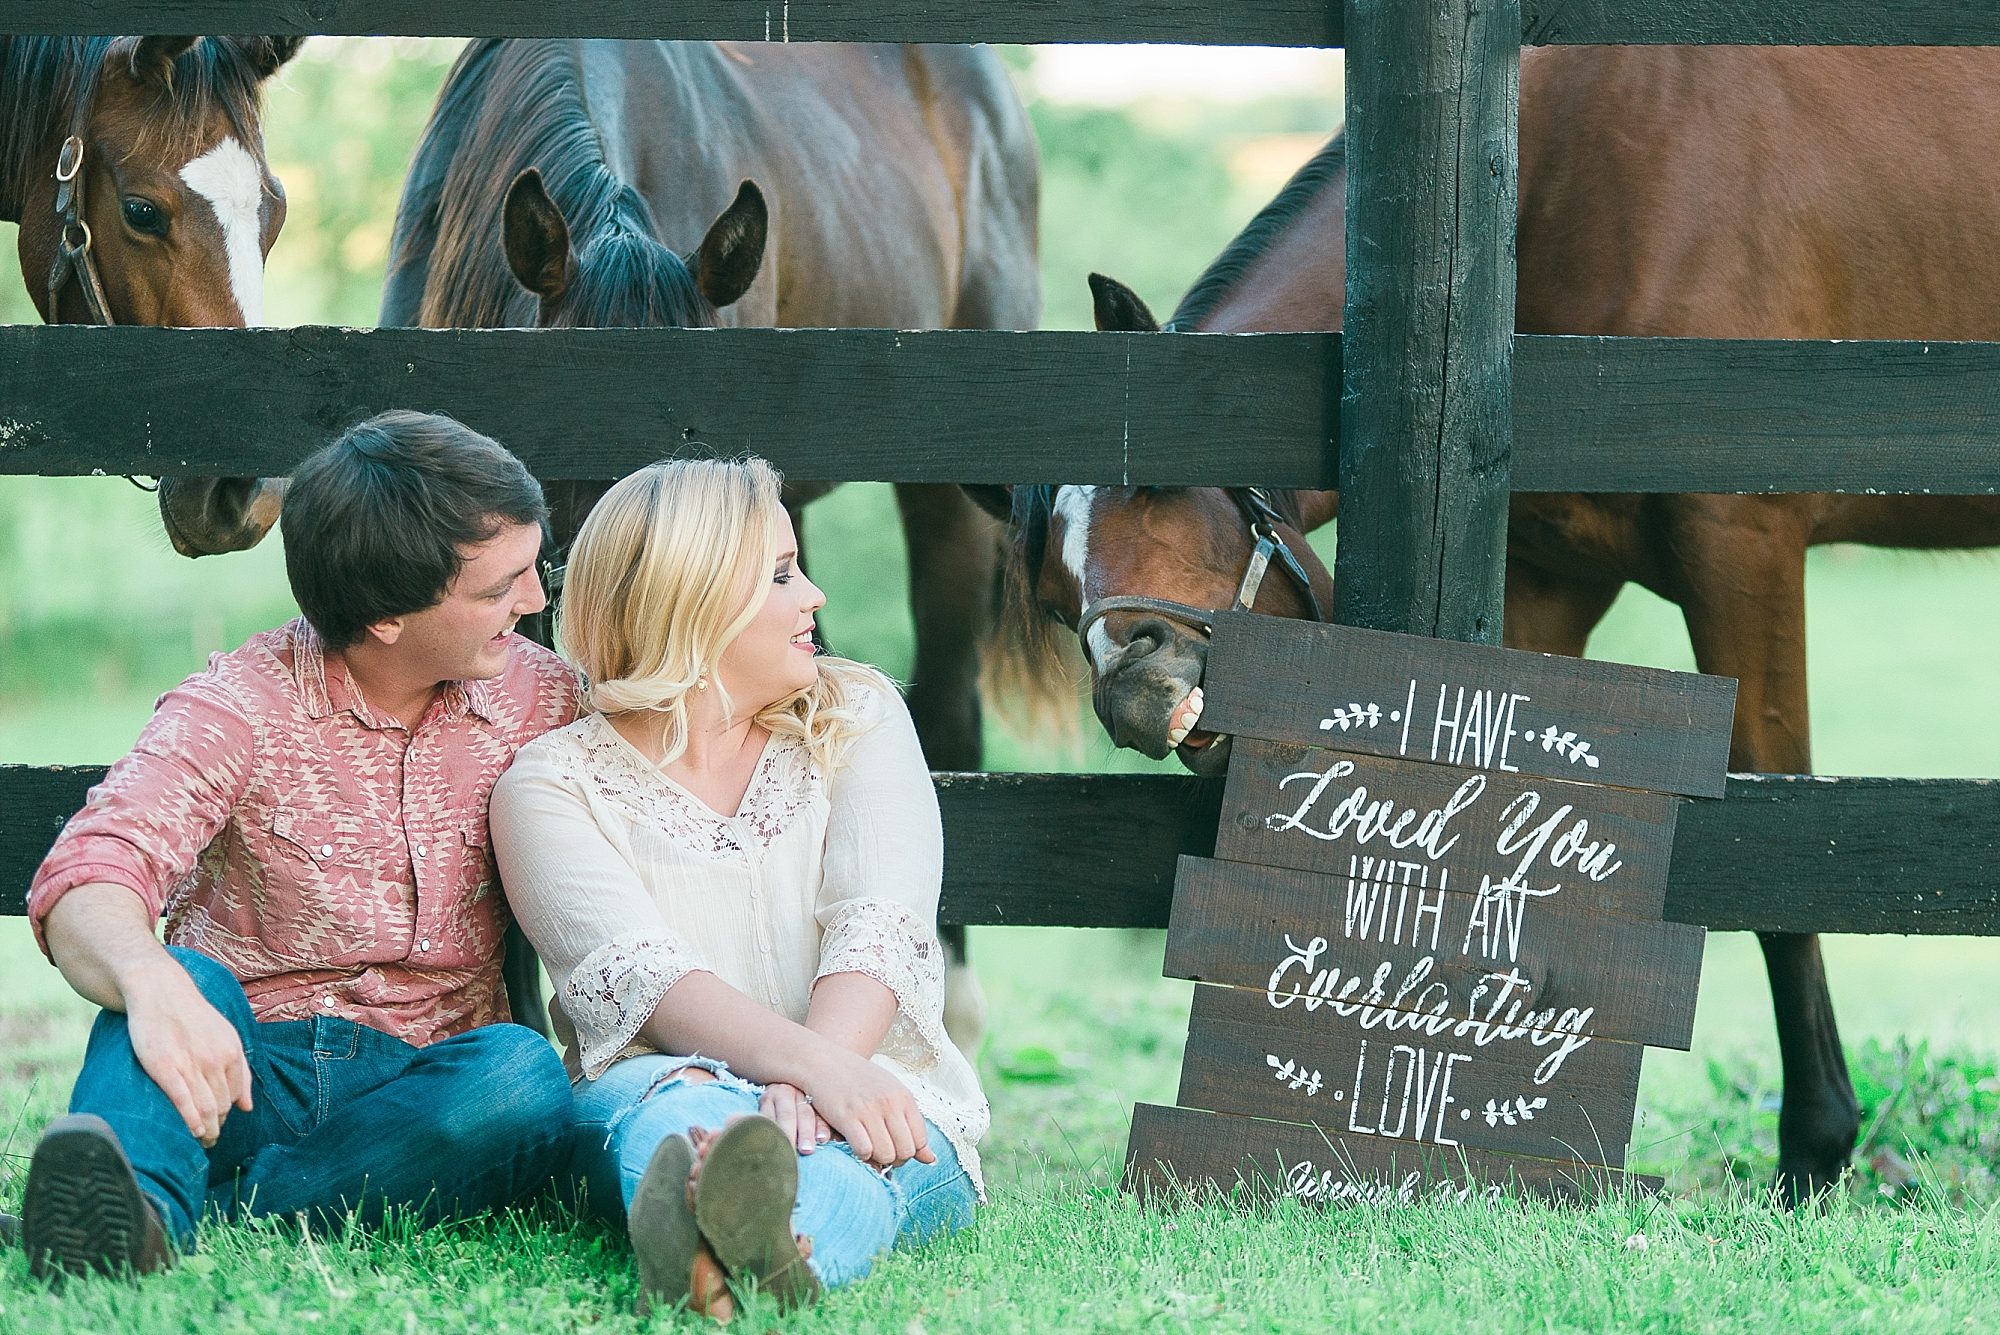 The horse thought the sign looked tasty! lol